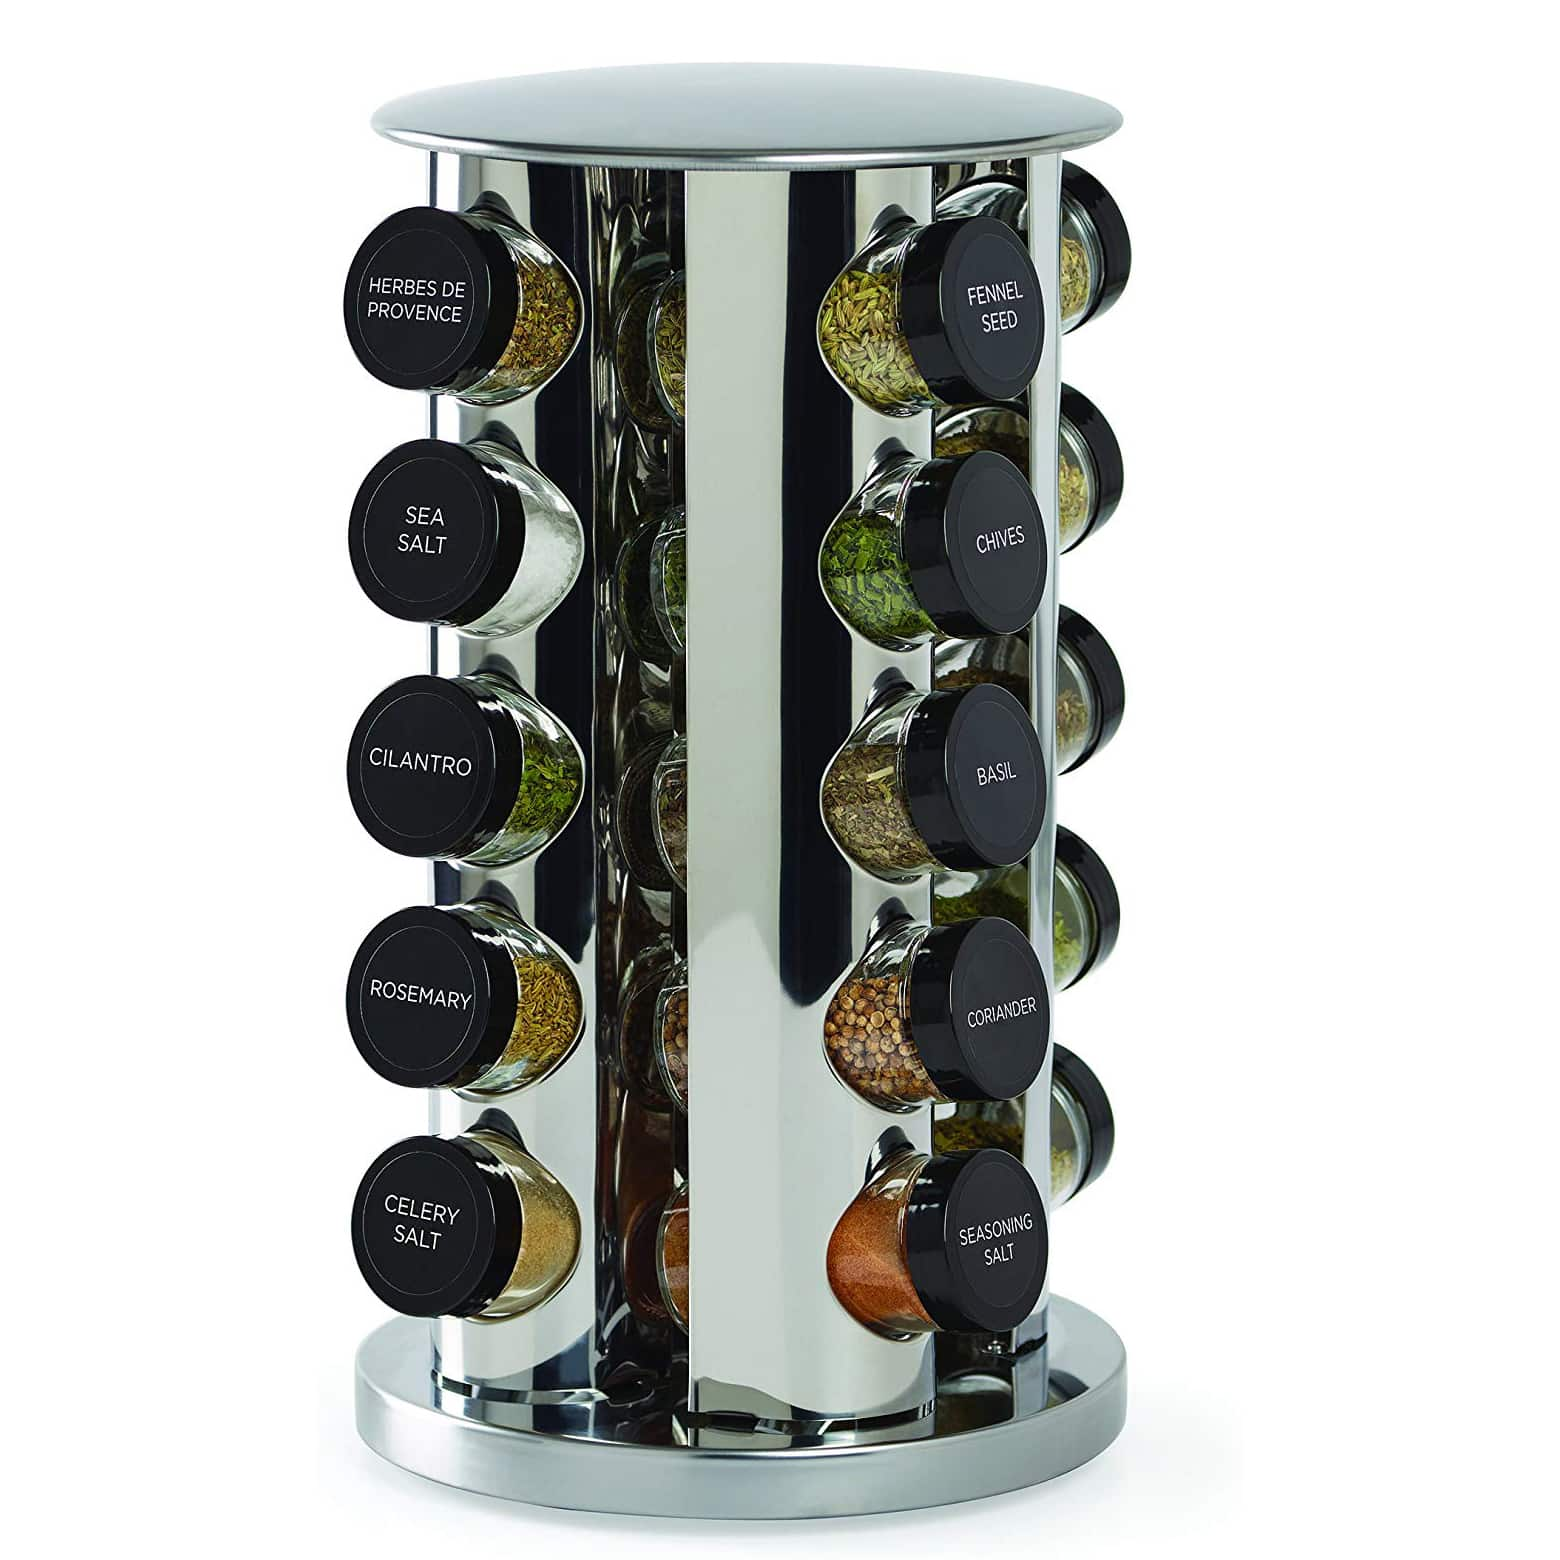 Kamenstein 30020 20-Jar Spice Rack